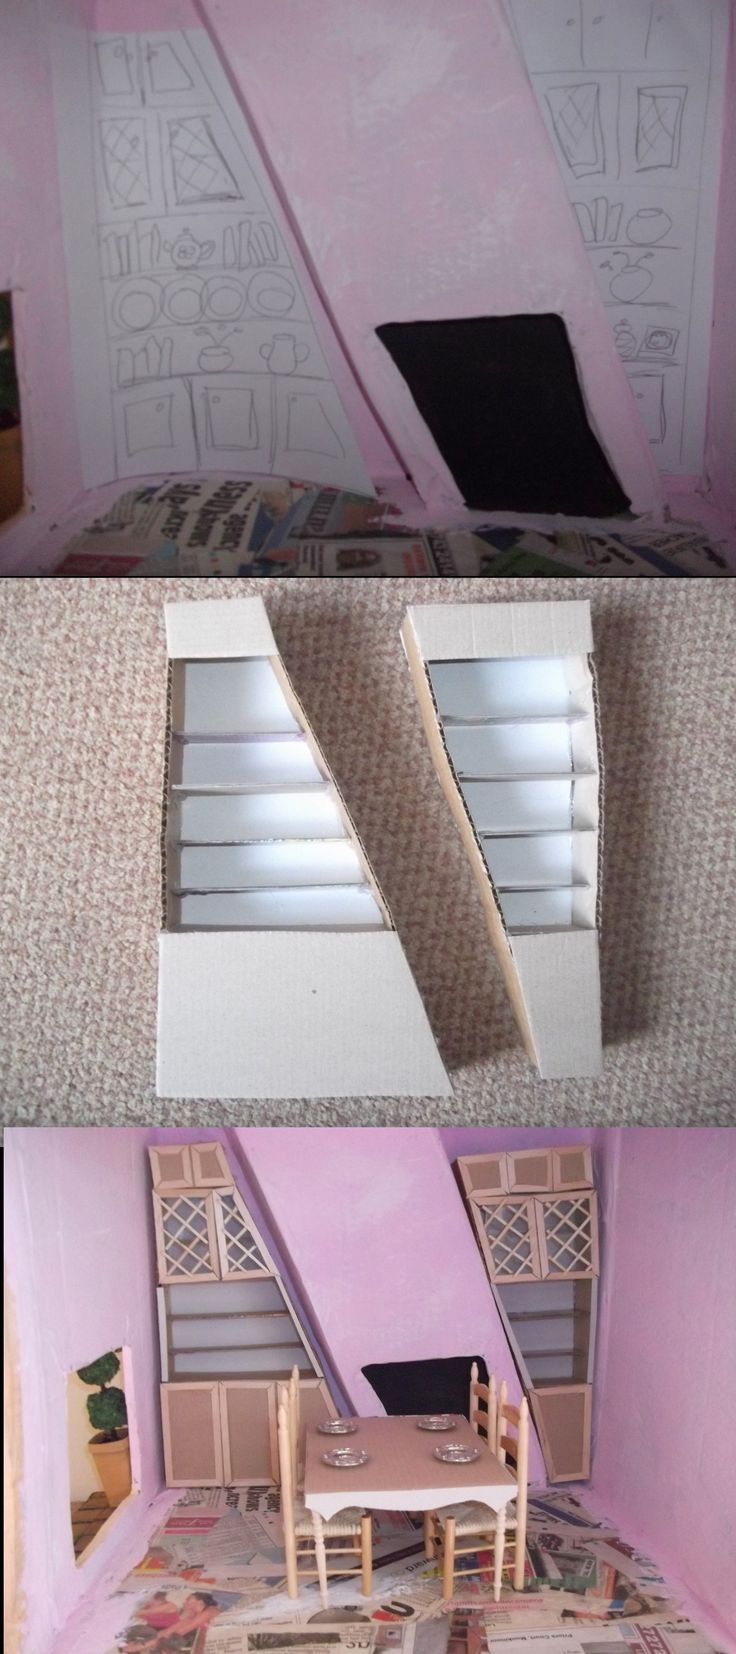 Designing And Constructing The Dining Room Dressers I Used Thick Thin Card Stuck Together